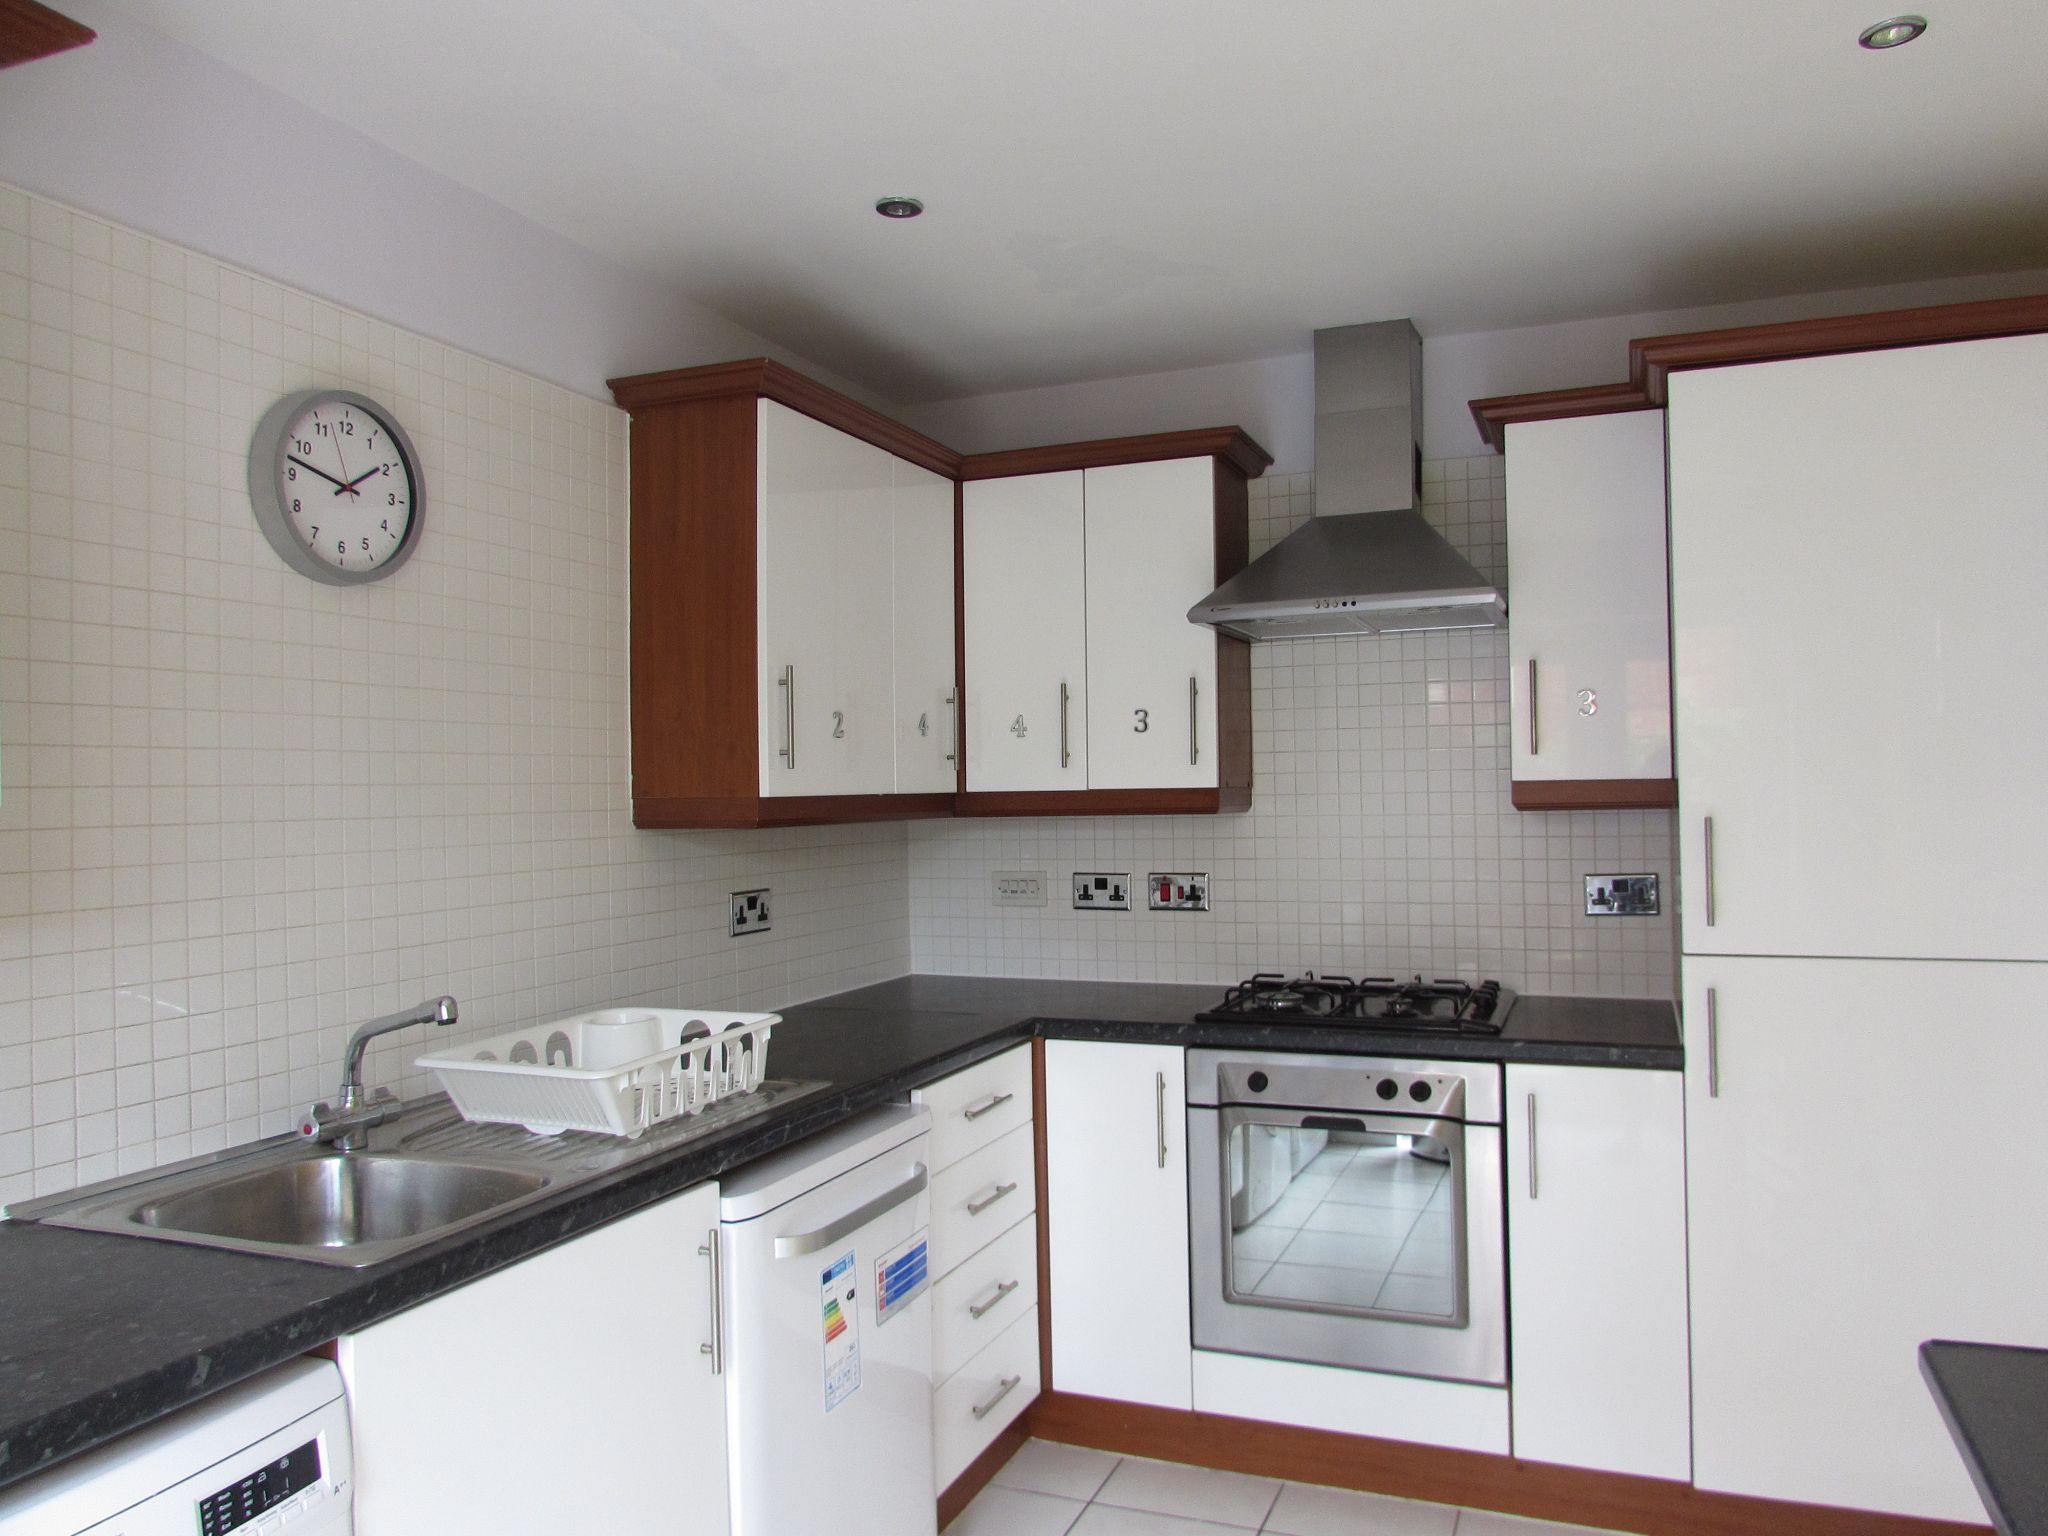 1 Bedroom Mid Terraced House To Rent - Kitchen